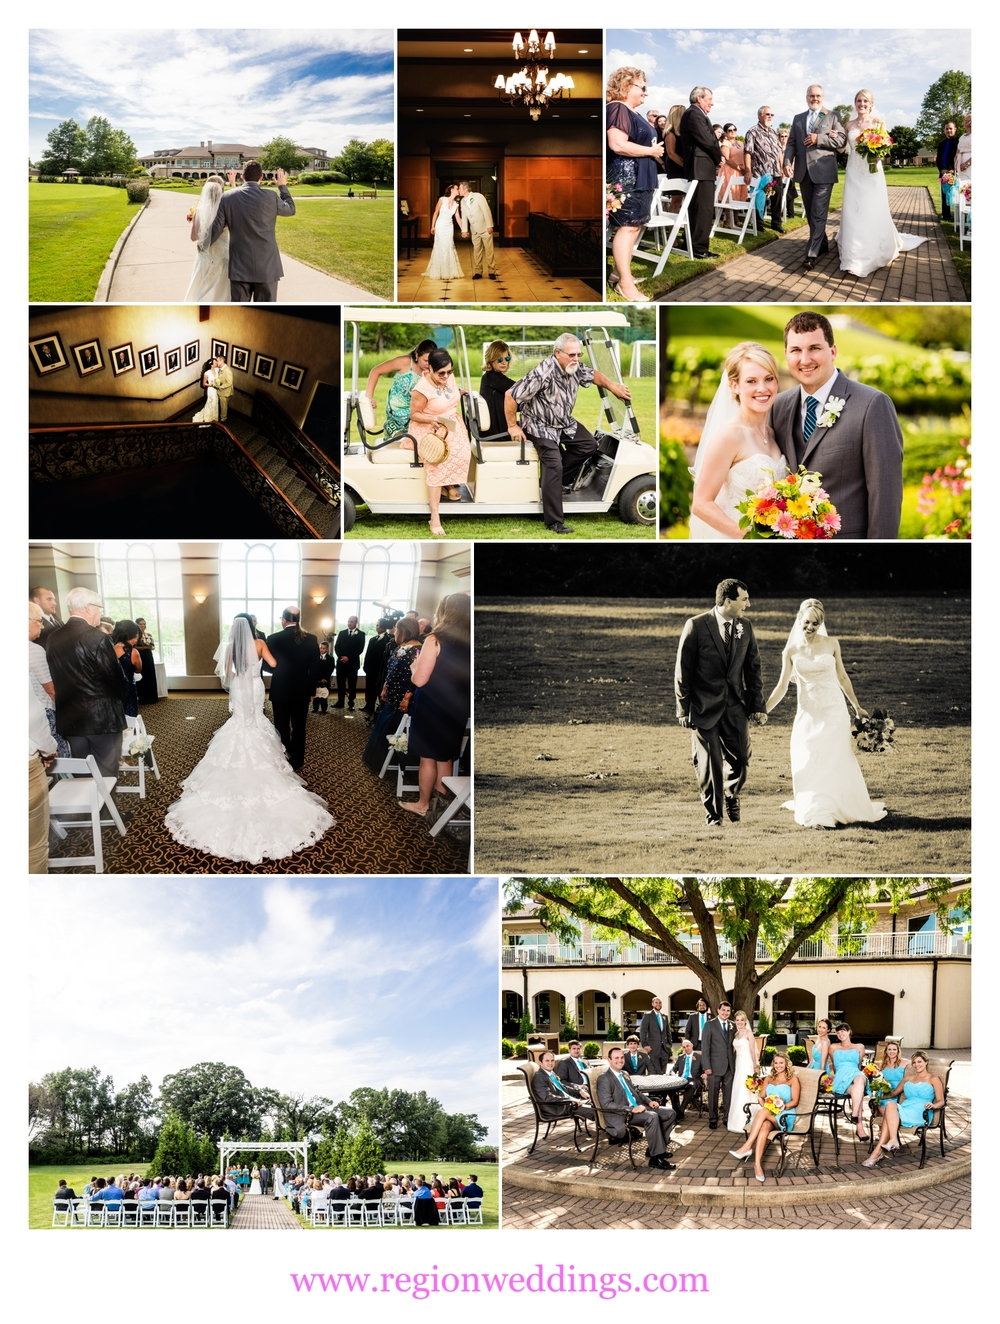 Wedding photos from Sand Creek Country Club.